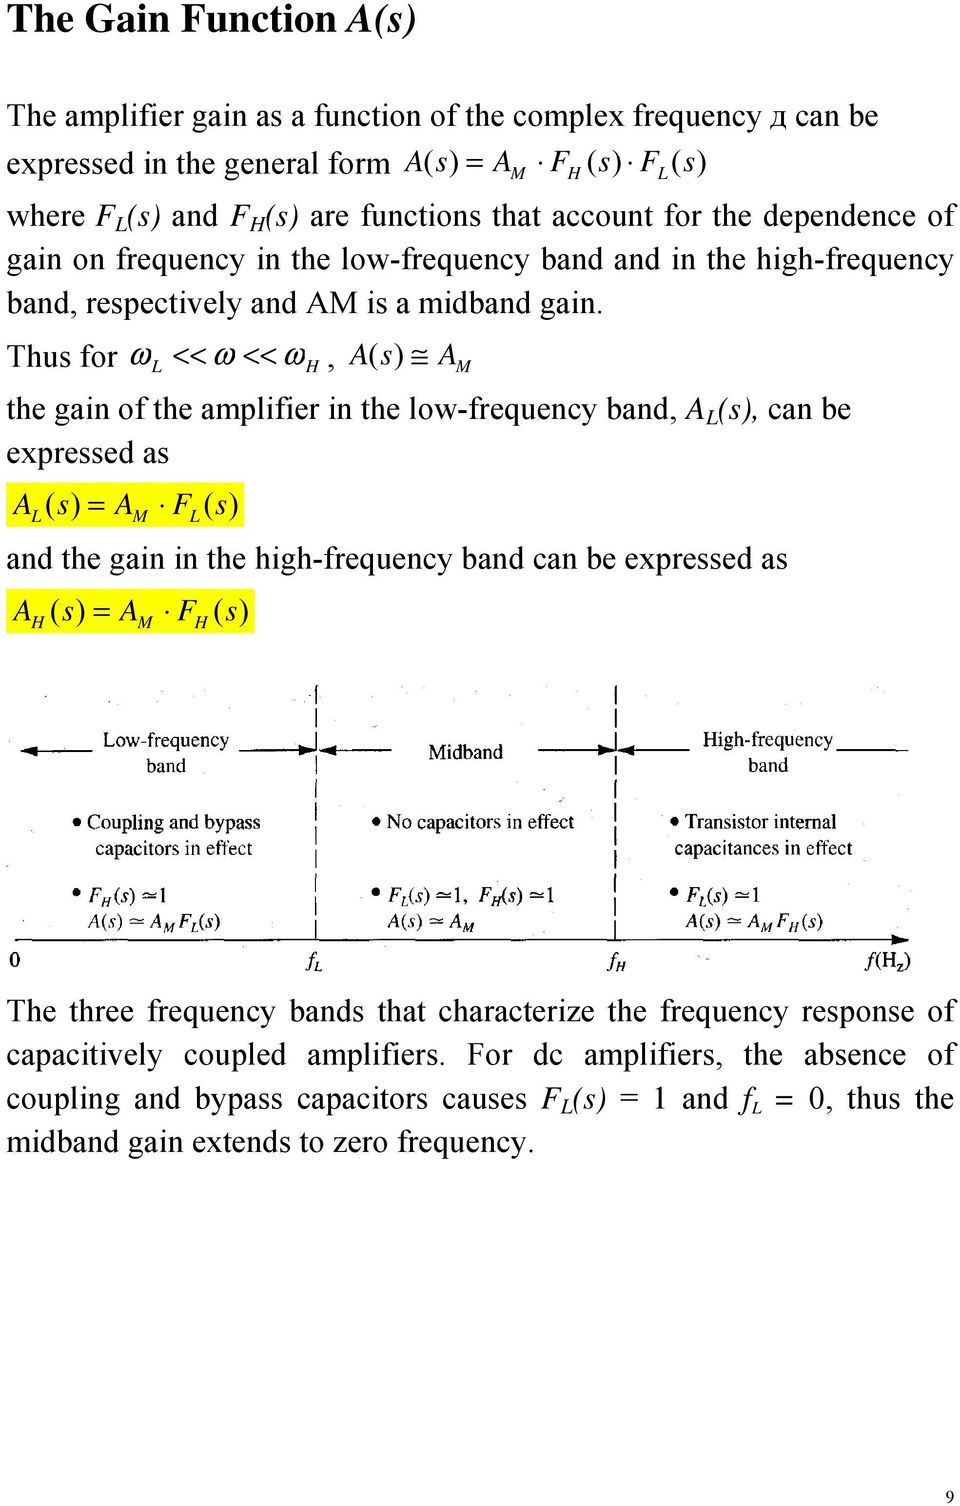 Thus for ω << ω << ω H, A( s) AM the gain of the amplifier in the low-frequency band, A (s), can be expressed as A = A F M and the gain in the high-frequency band can be expressed as A H = A